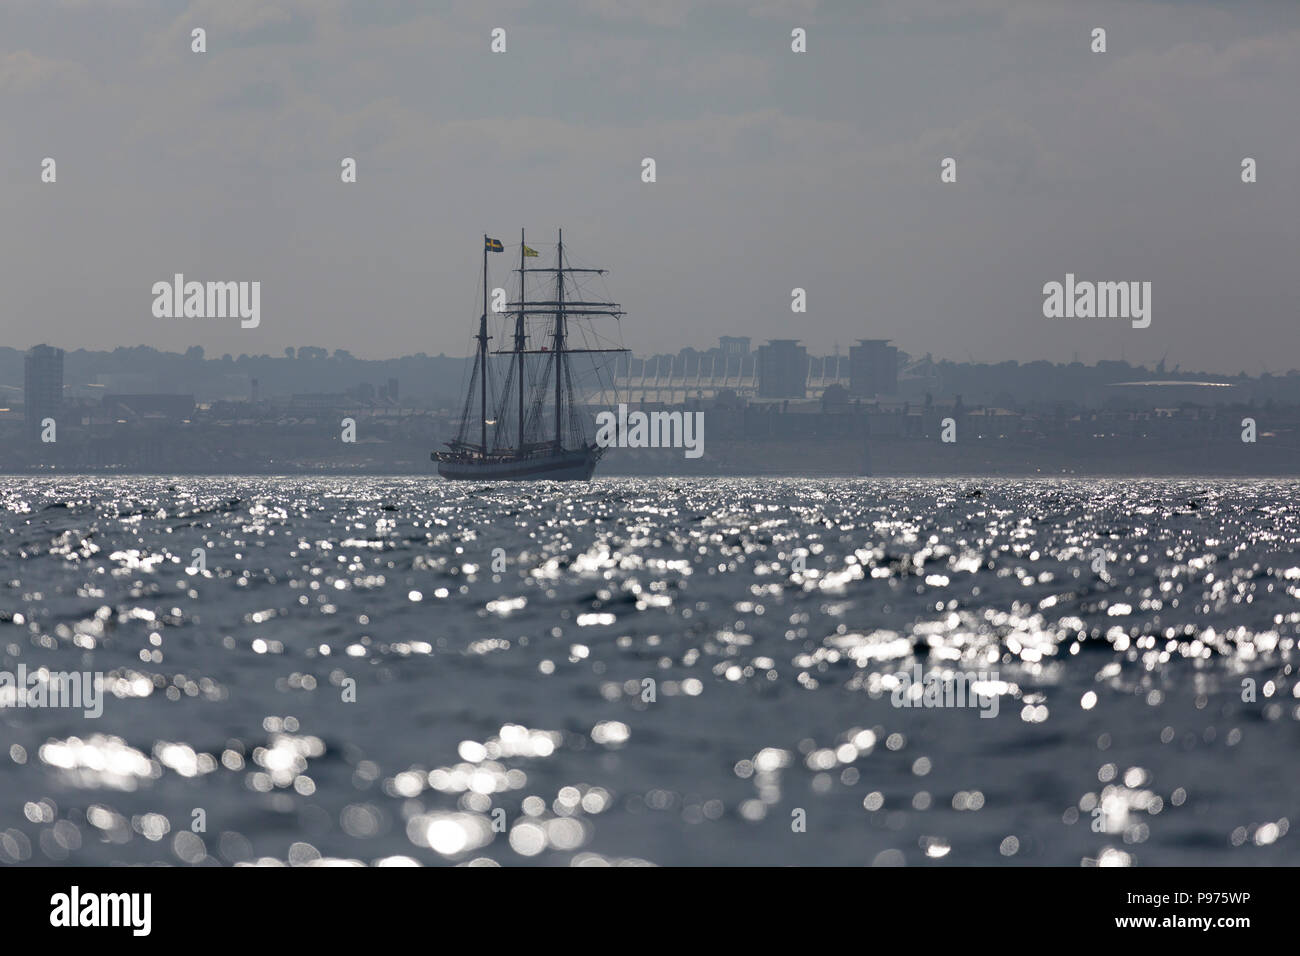 Sunderland, UK. 14th July 2018. The Vega Gambleby, a Swedish ship, on the North Sea at the beginning of the first leg of the 2018 Tall Ships Race, to Ebsjerg in Denmark. More than 50 tall ships were docked in the Port of Sunderland, in north-east England, from 11 to 14 July 2018. Credit: Stuart Forster/Alamy Live News - Stock Image